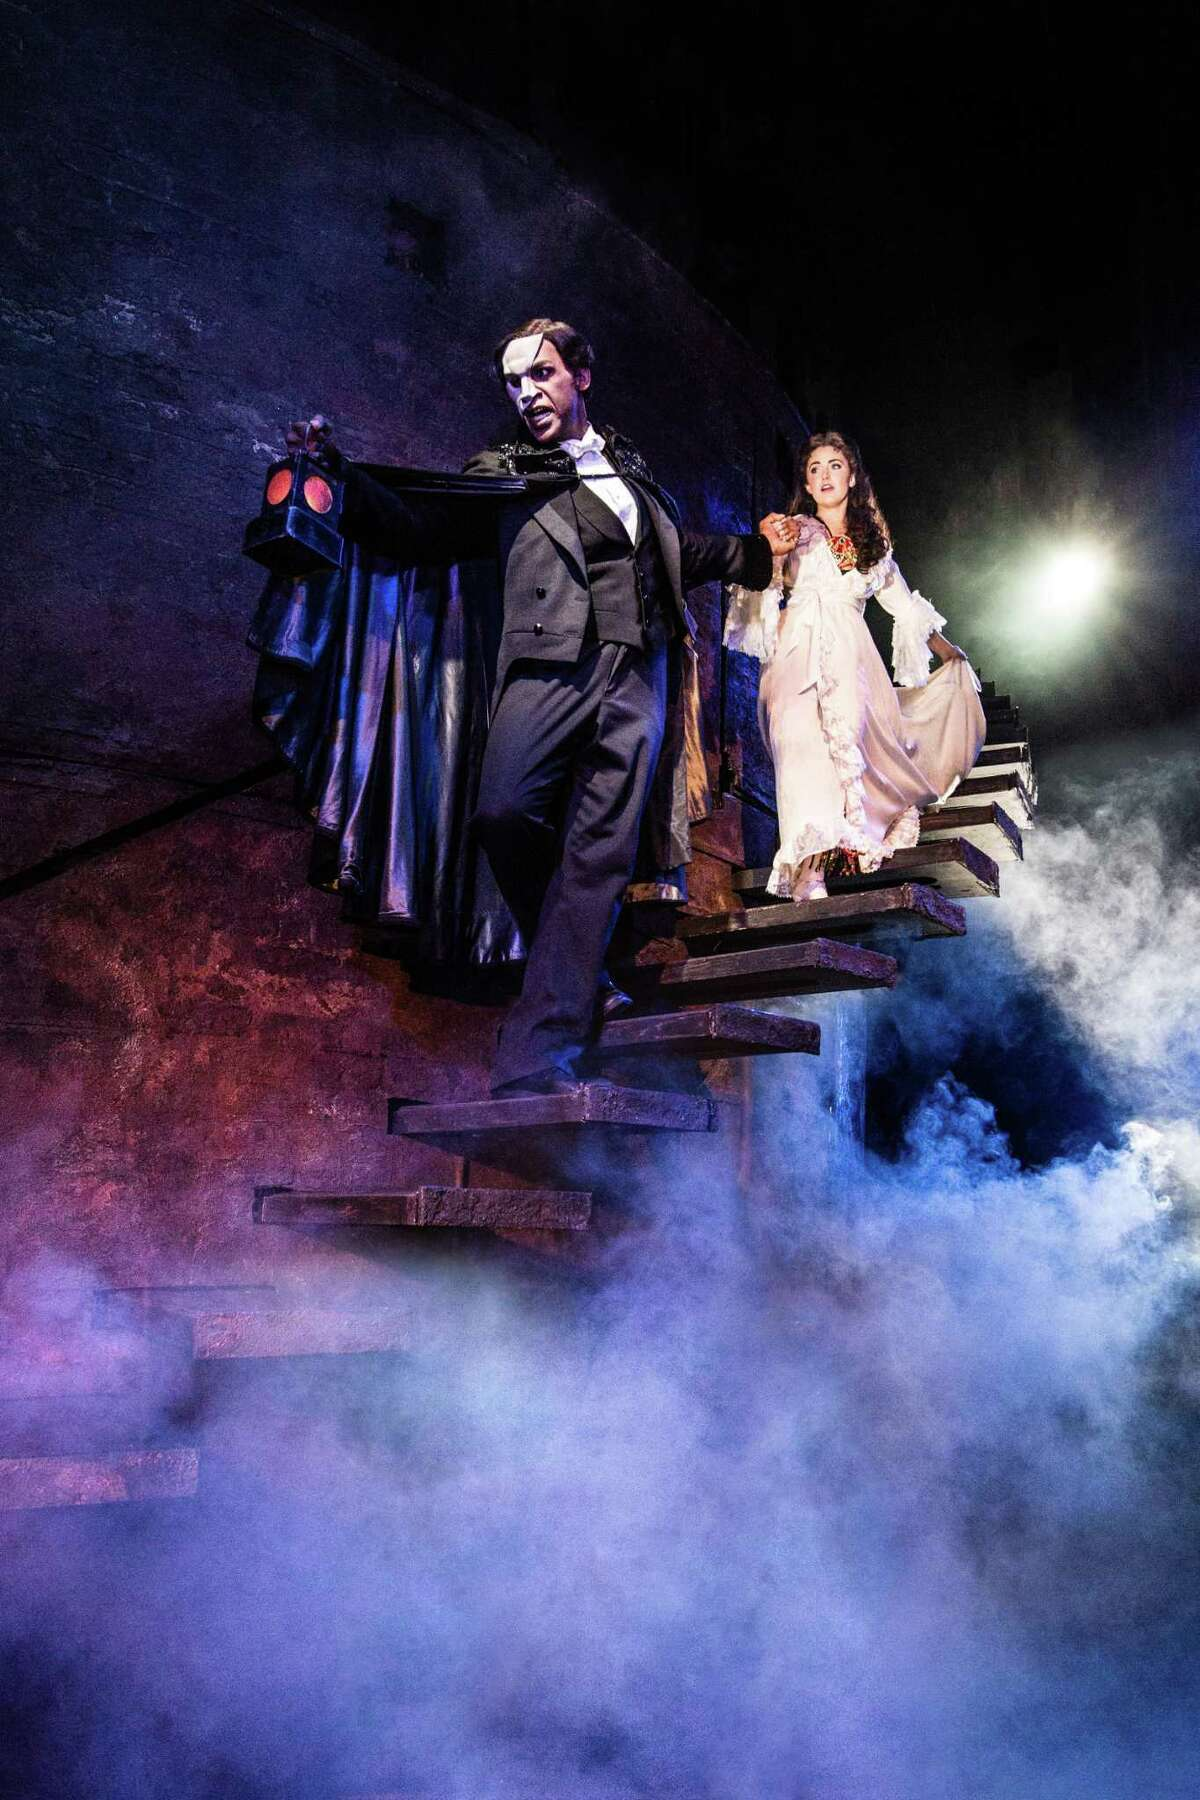 """""""The Phantom of the Opera': """"The Phantom of the Opera,"""" the last show of 2018 in the Broadway in San Antonio series, is settling back into the Majestic Theatre. This time around, Quentin Oliver Lee plays the Phantom, the damaged soul obsessed with a young opera singer (Eva Tavares, right). The Phantom sees great promise in her and goes to great lengths to advance her career and - he hopes - win her heart. 8 p.m. Fridays, 2 and 8 p.m. Saturdays, 2 and 7:30 p.m. Sundays and 7:30 p.m. Tuesdays-Thursdays through Dec. 16, Majestic Theatre, 224 E. Houston St. $65 to $155 at the box office and ticketmaster.com. Info, majesticempire.com. - Deborah Martin"""